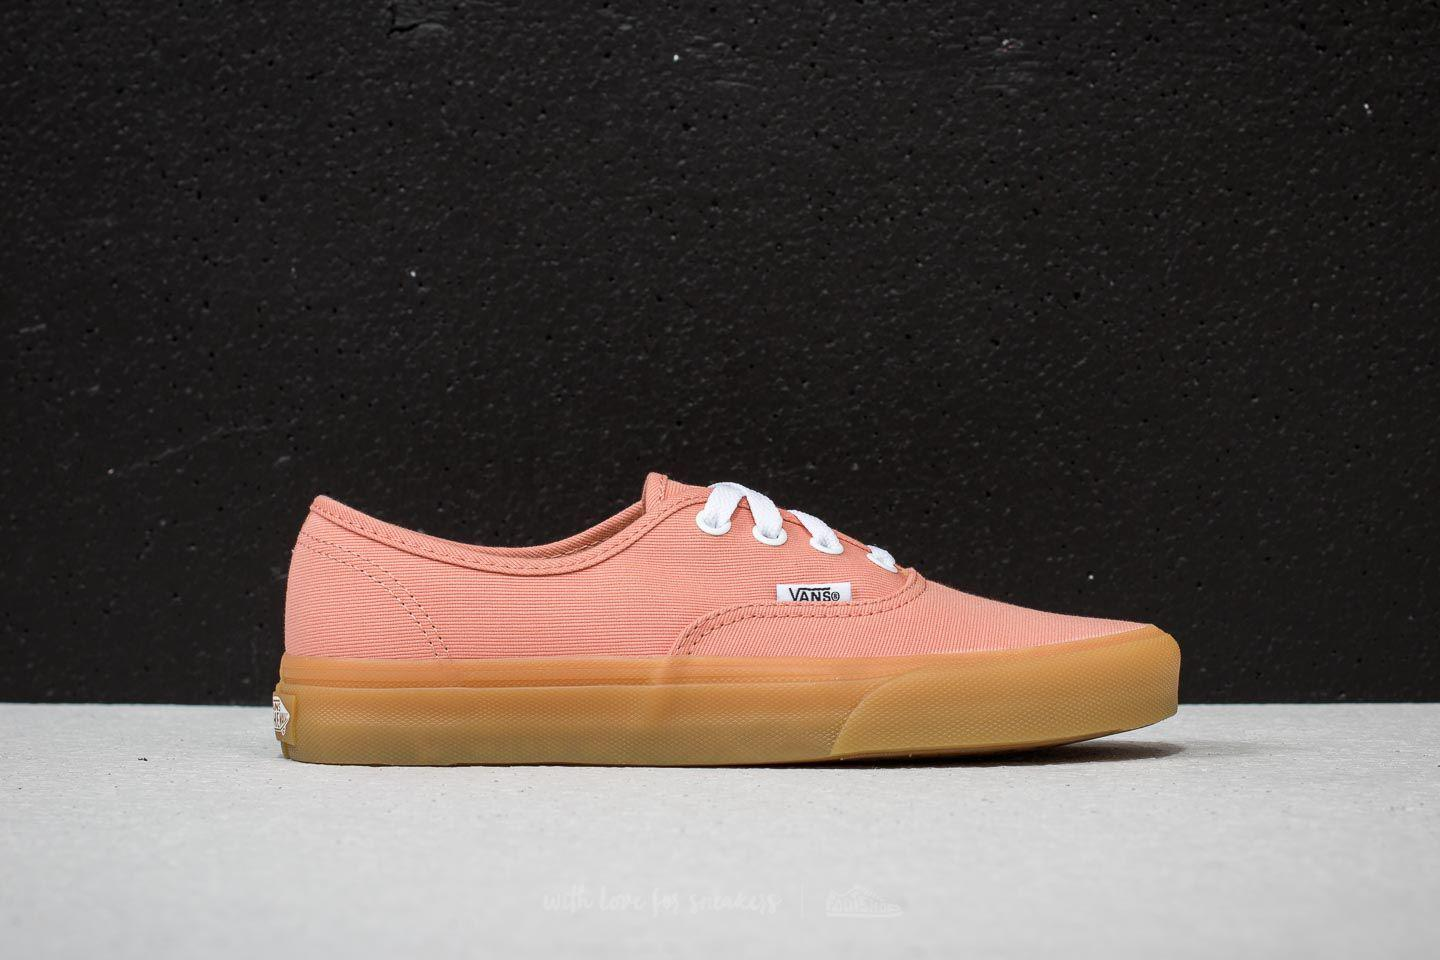 87b084bba5 Lyst - Vans Authentic Muted Clay  Gum